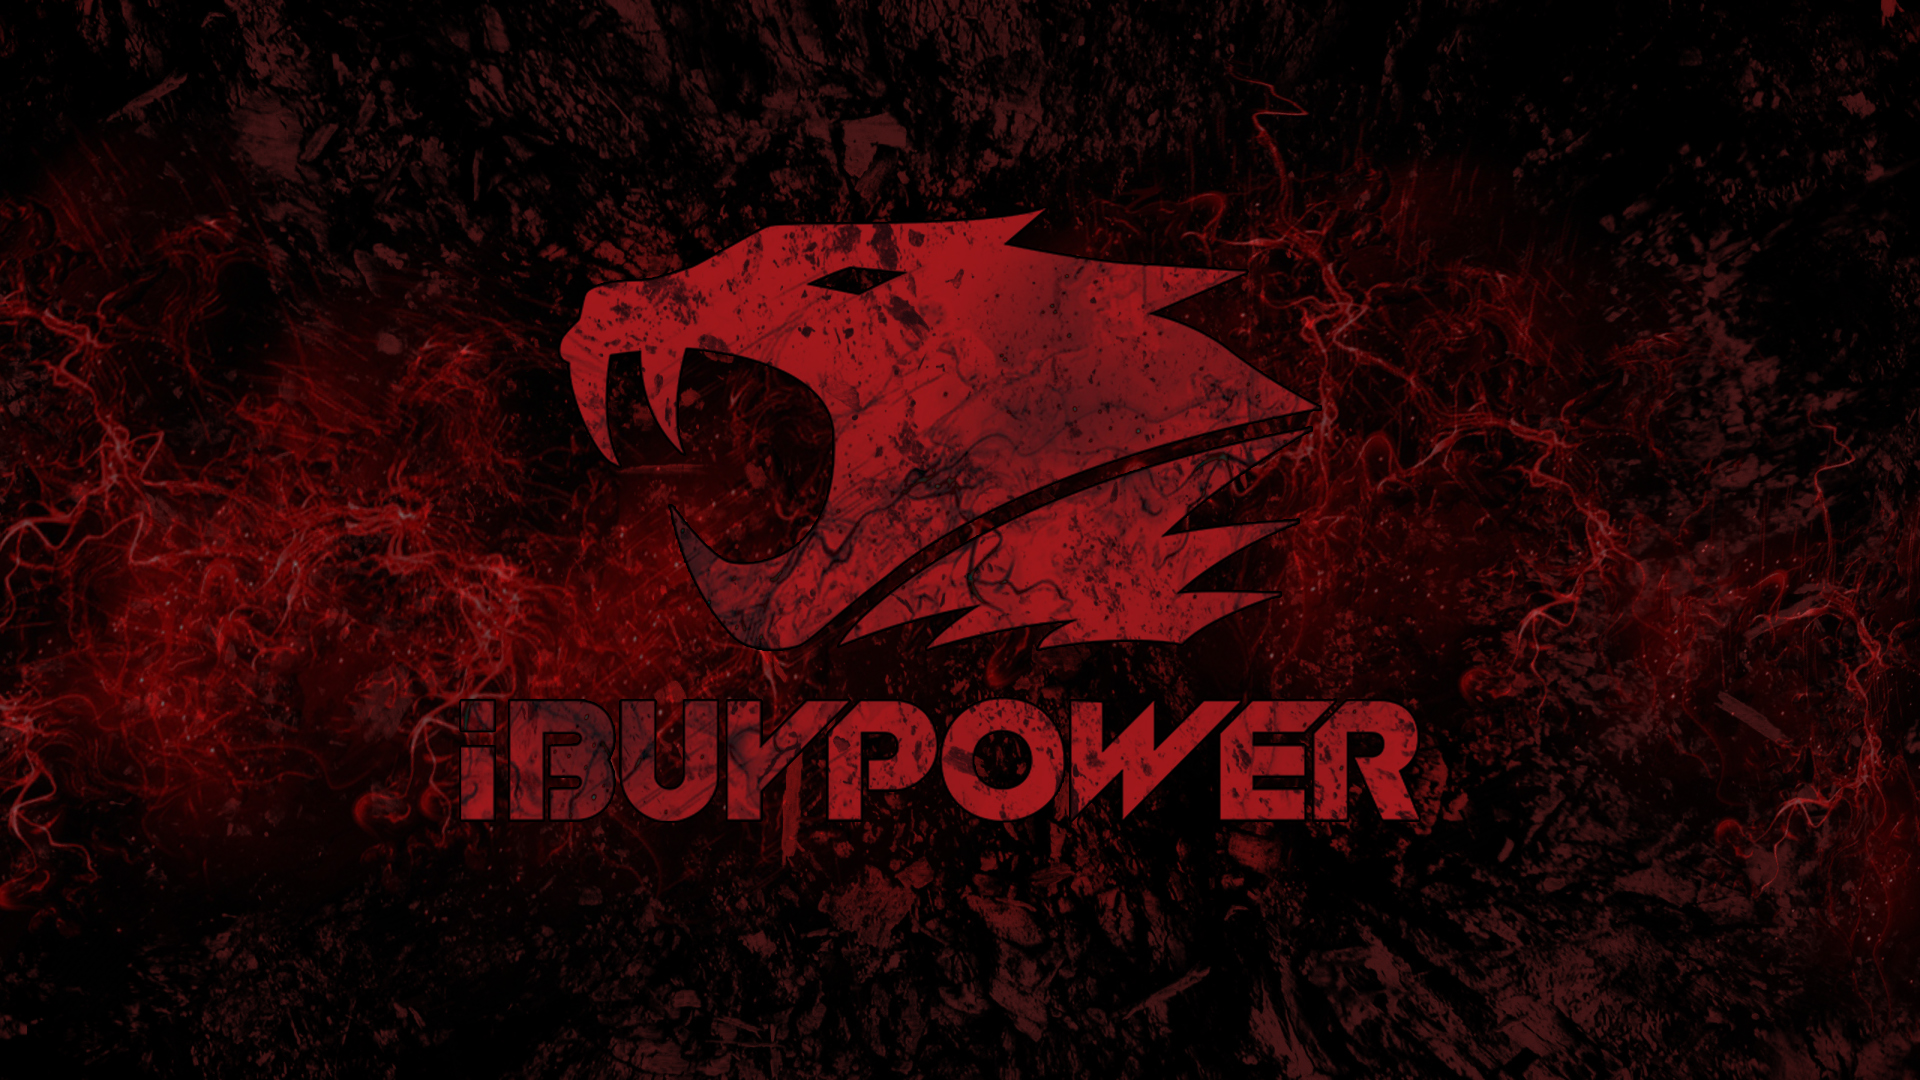 Ibuypower Wallpapers Widescreen TH1VV9Z   4USkY 1920x1080